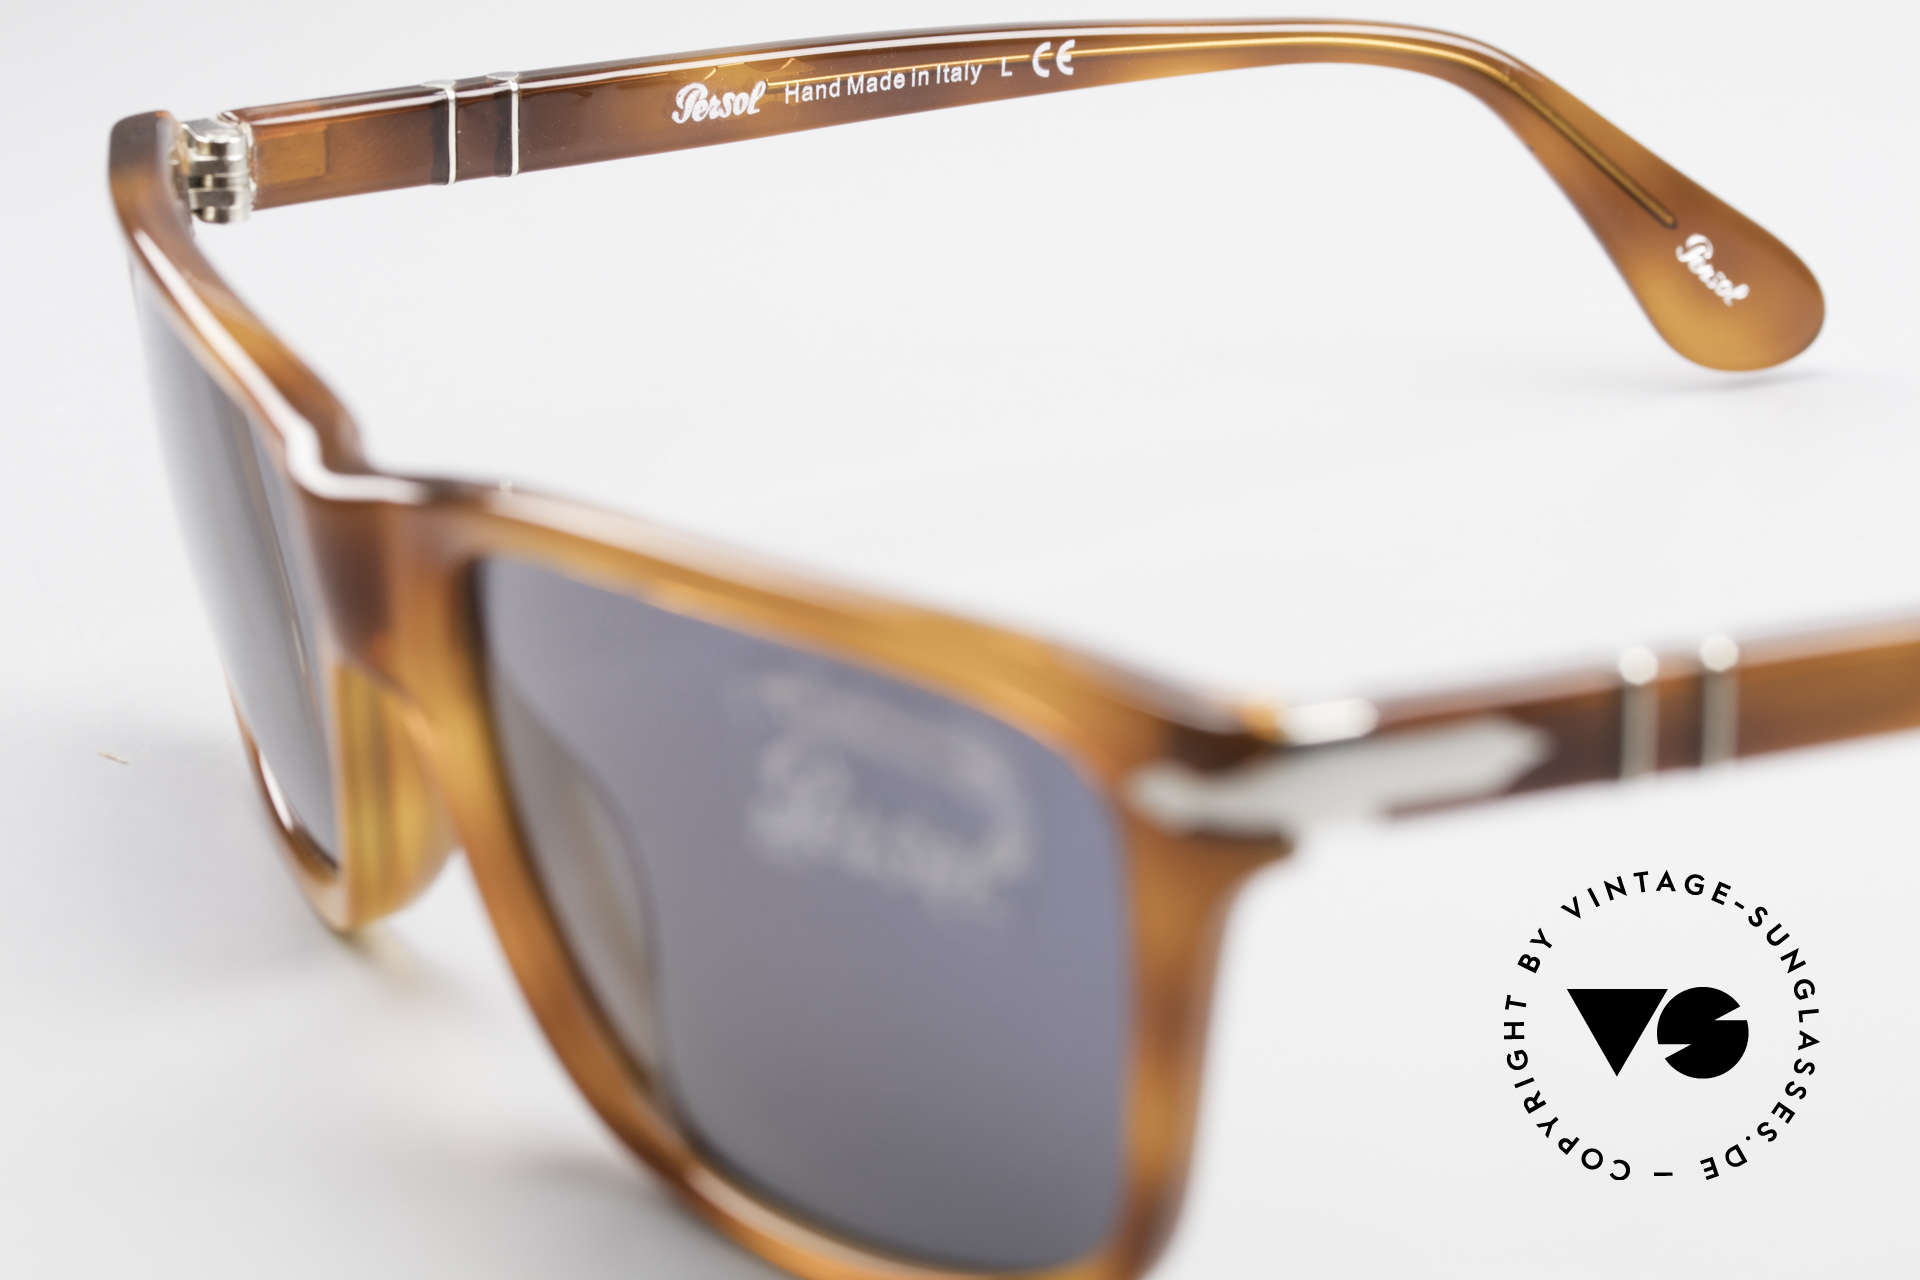 Persol 3026 Classic Sunglasses For Men, sun lenses could be replaced with prescriptions, Made for Men